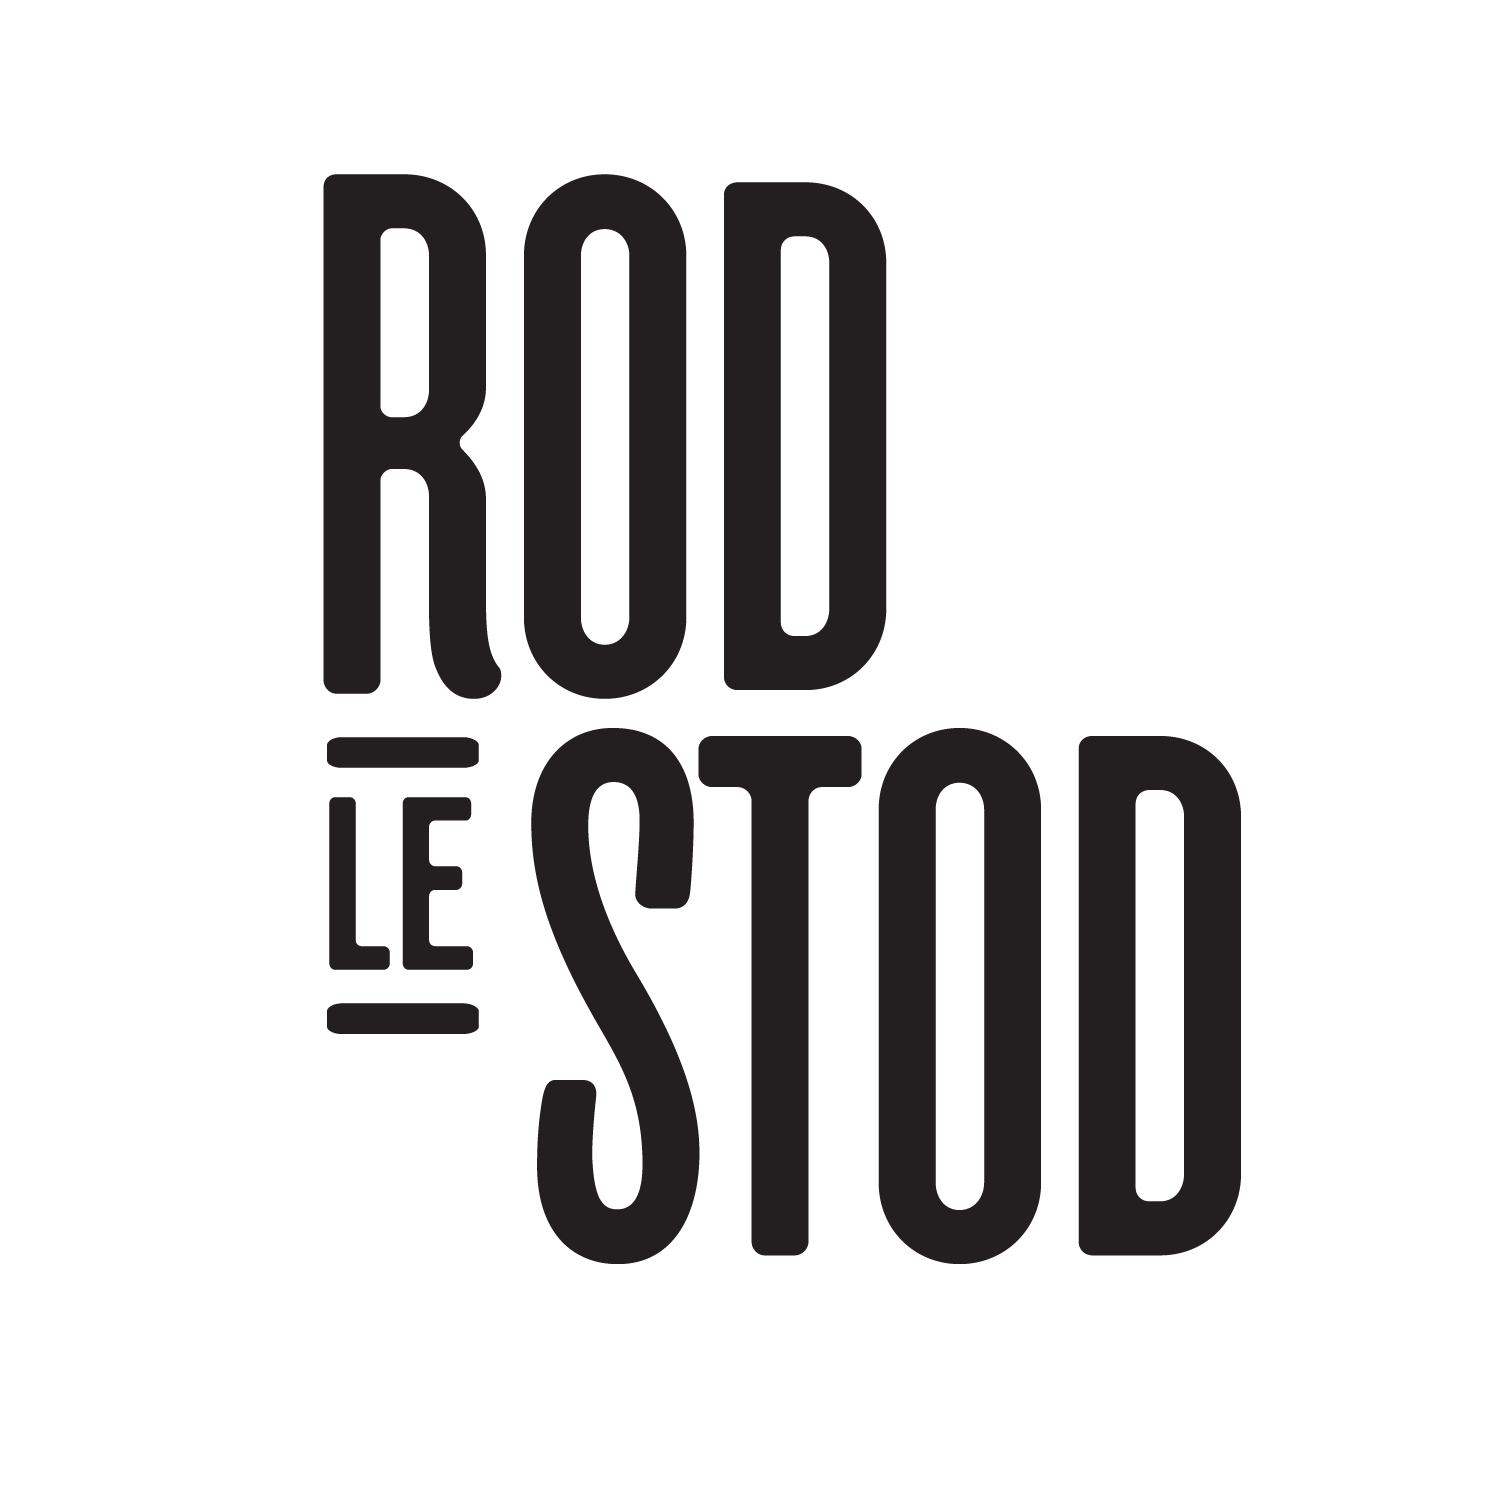 Site officiel de Rod le Stod Logo